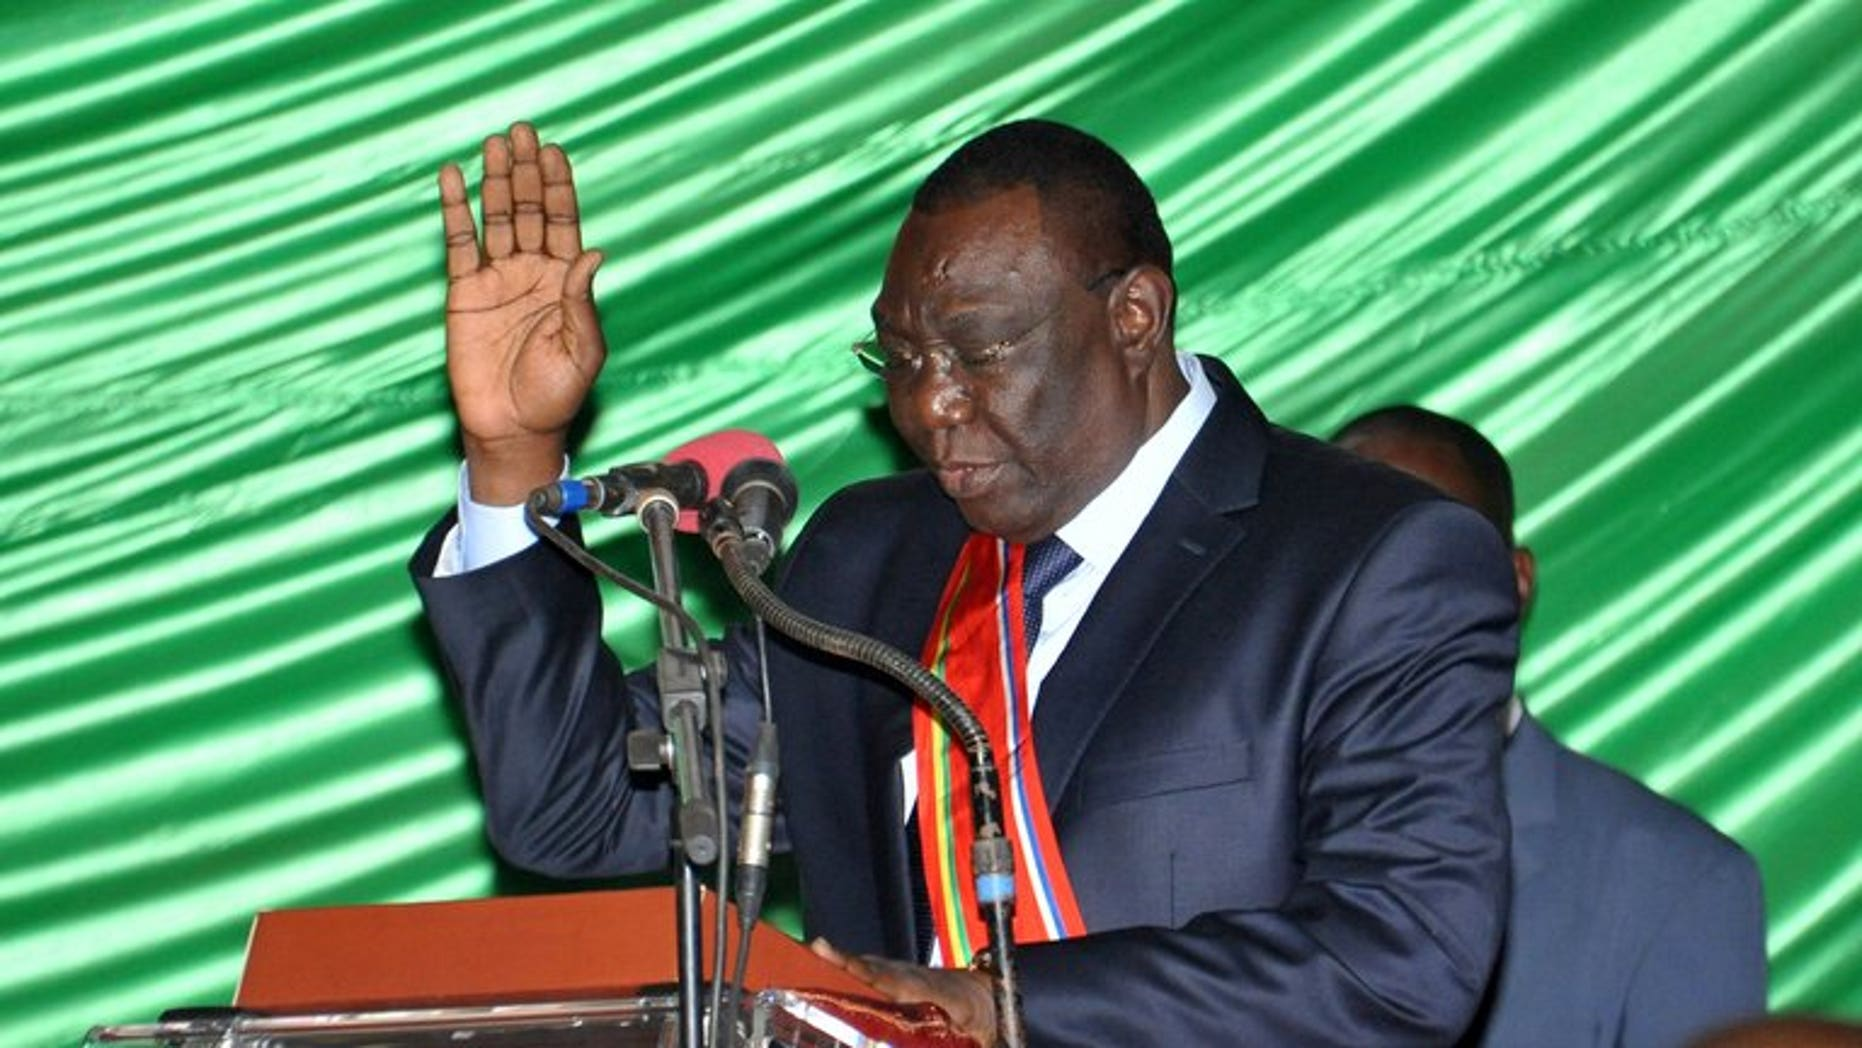 Former rebel leader Michel Djotodia takes the oath during a swearing-in ceremony on August 18, 2013 in Bangui. At least 11 people were killed and 35 injured in clashes that erupted when the new Central African Republic government tried to disarm supporters of ousted leader Francois Bozize, hospital sources said Wednesday.